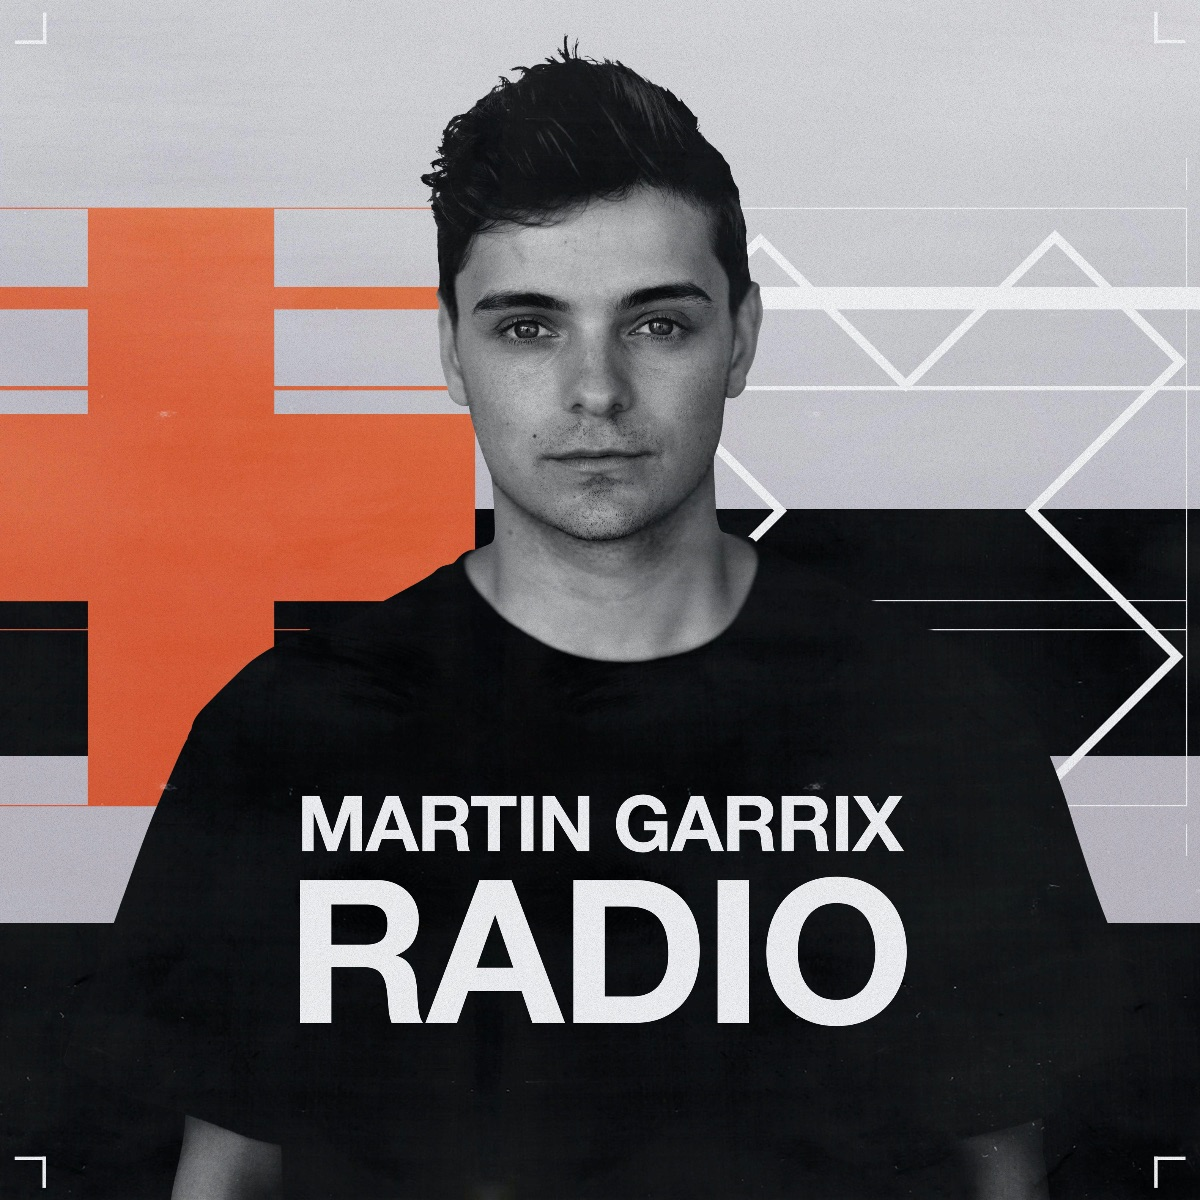 Martin Garrix Radio show expands to YouTube | FrontView Magazine